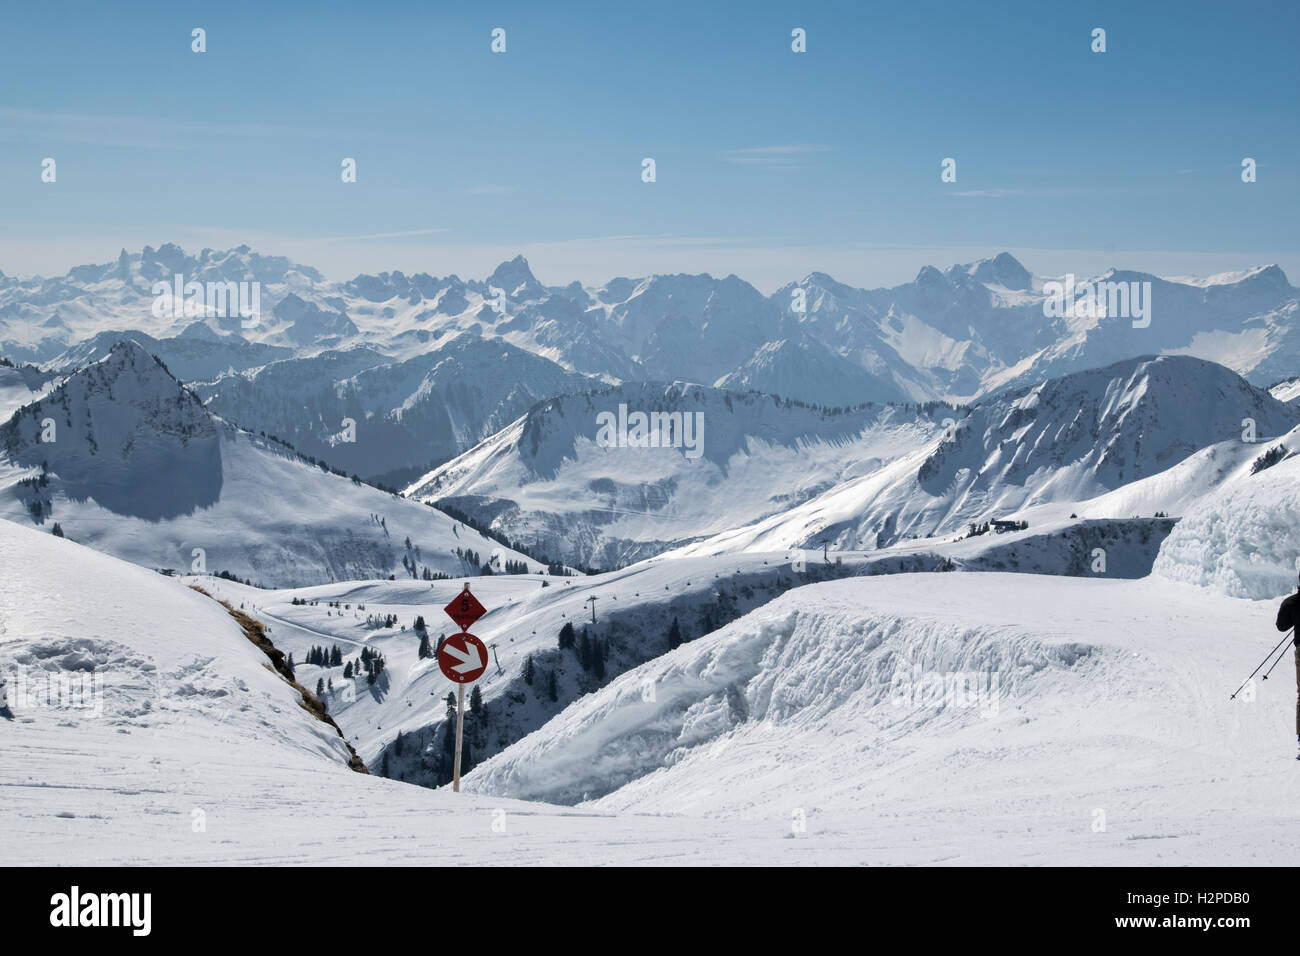 sign on ski piste in winter landscape - Stock Image